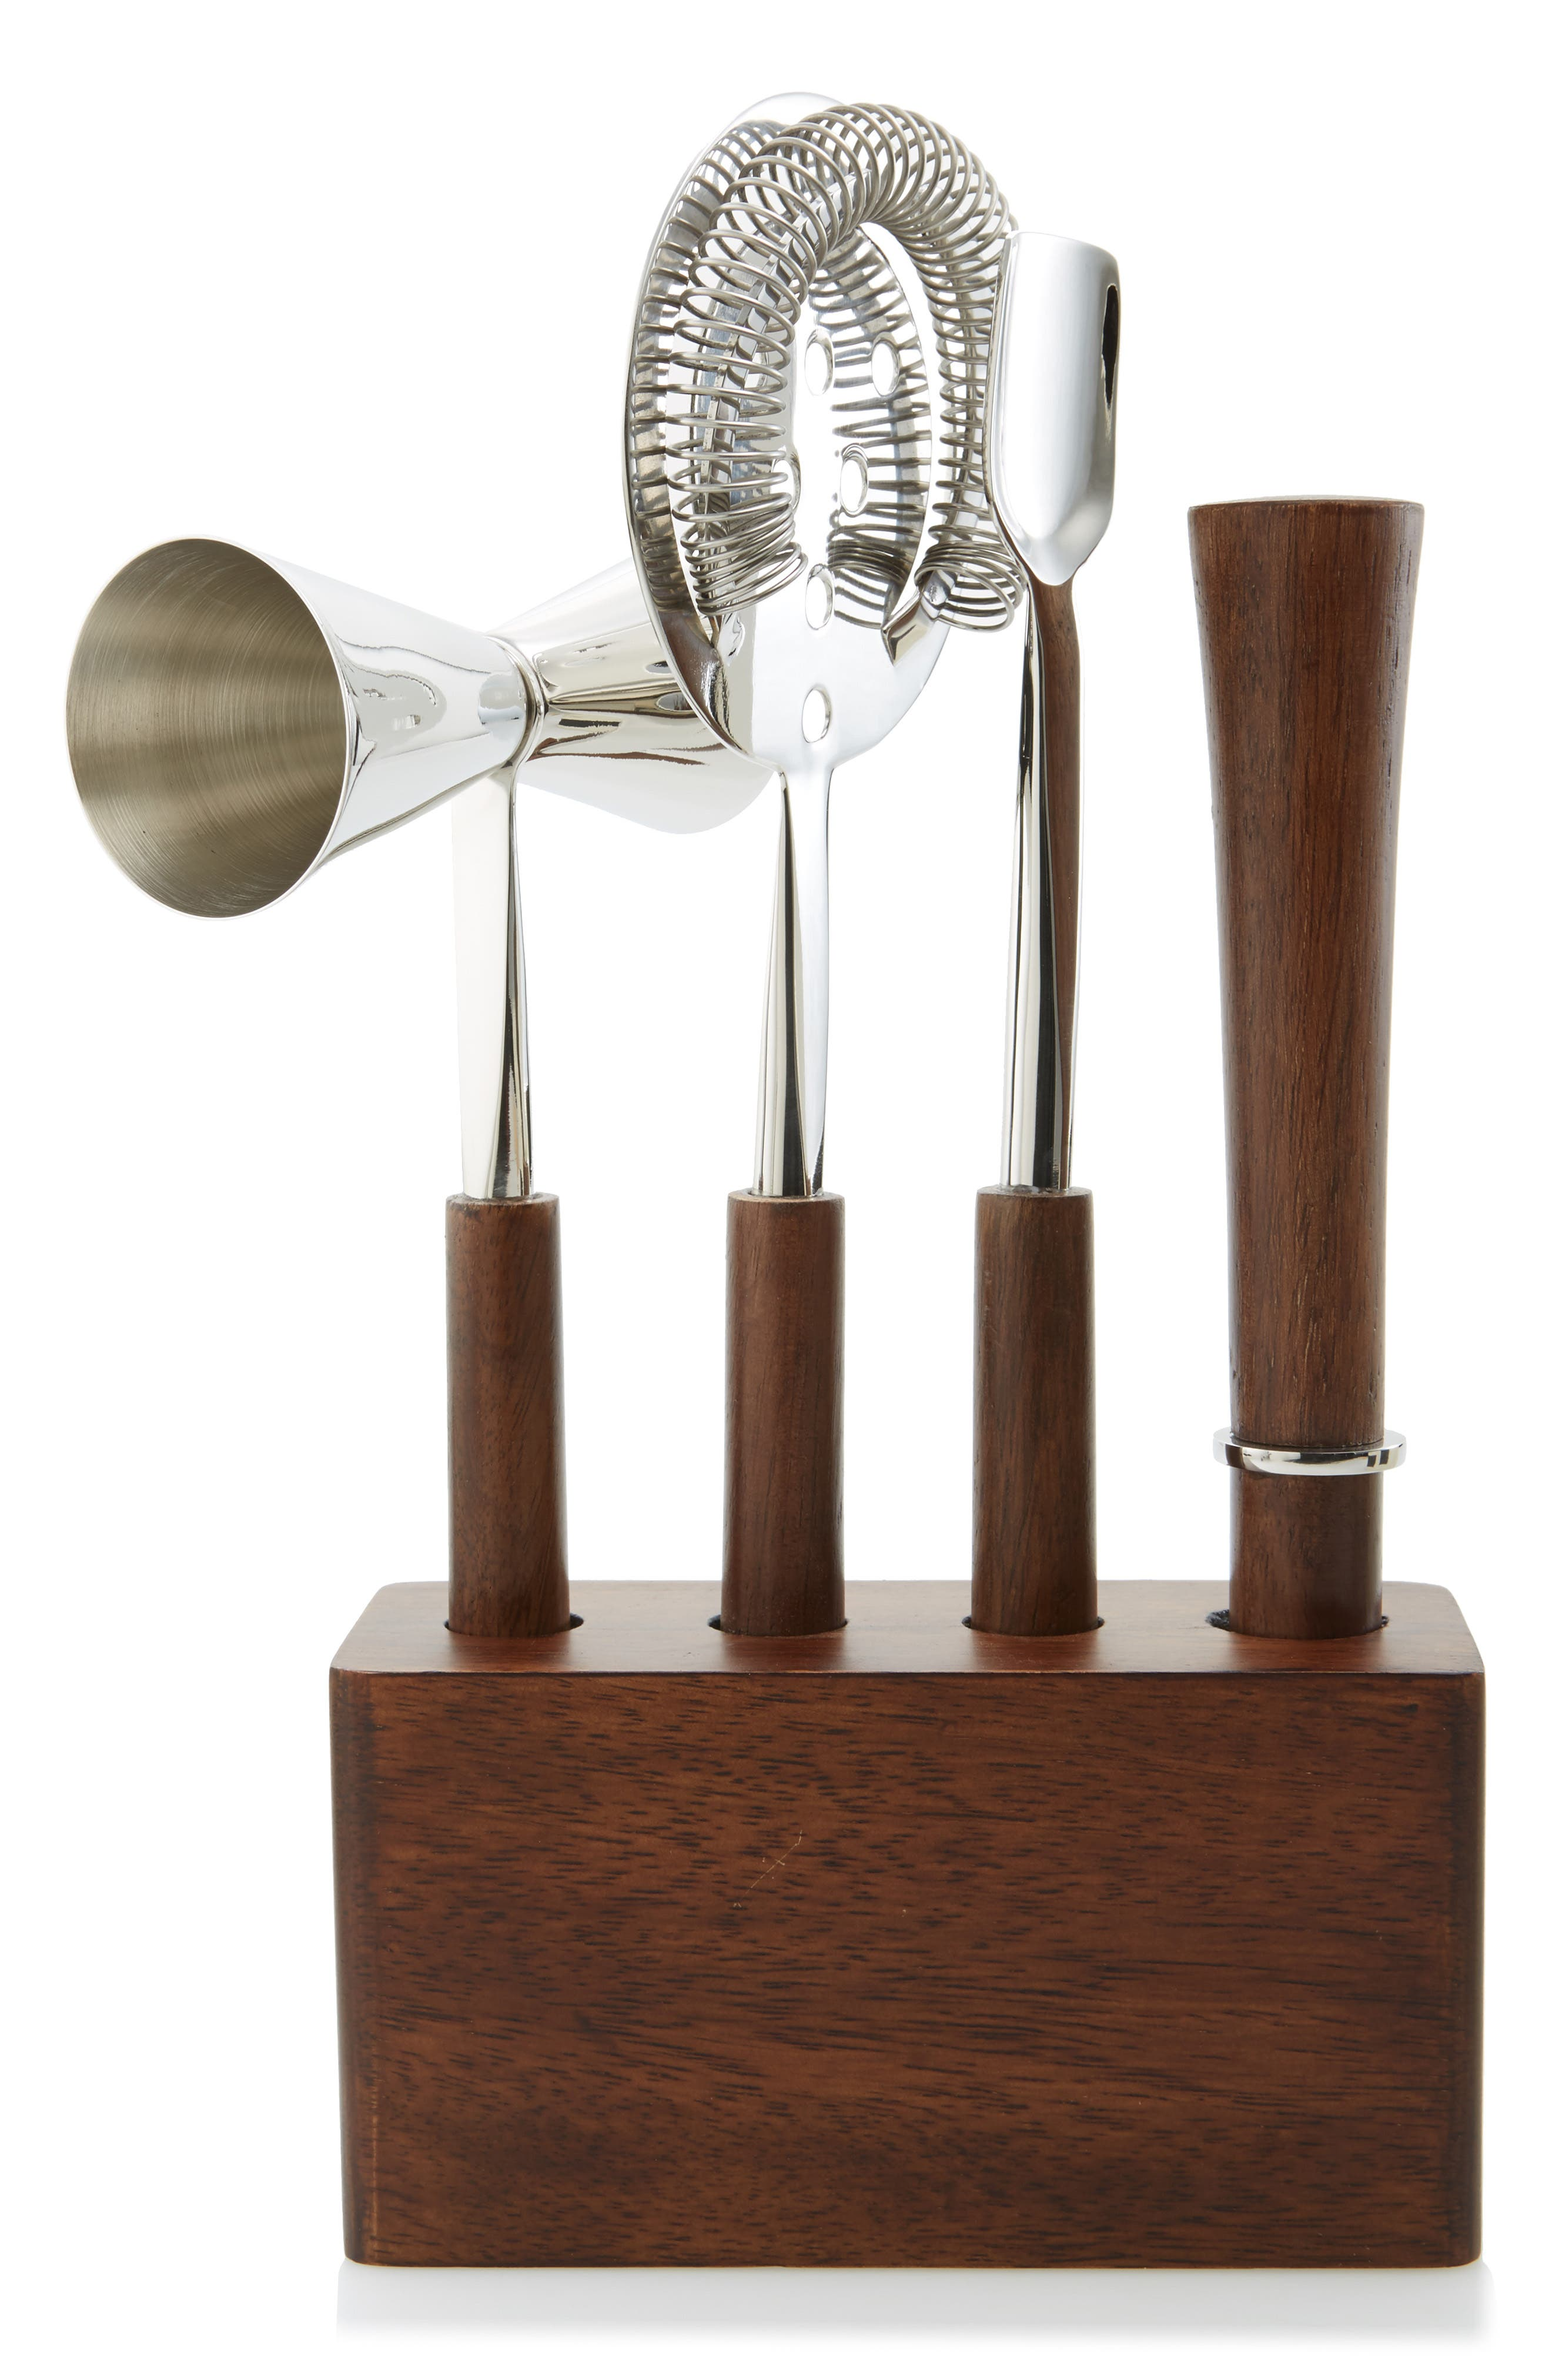 4-Piece Stainless Steel & Wood Bar Set,                         Main,                         color, Silver